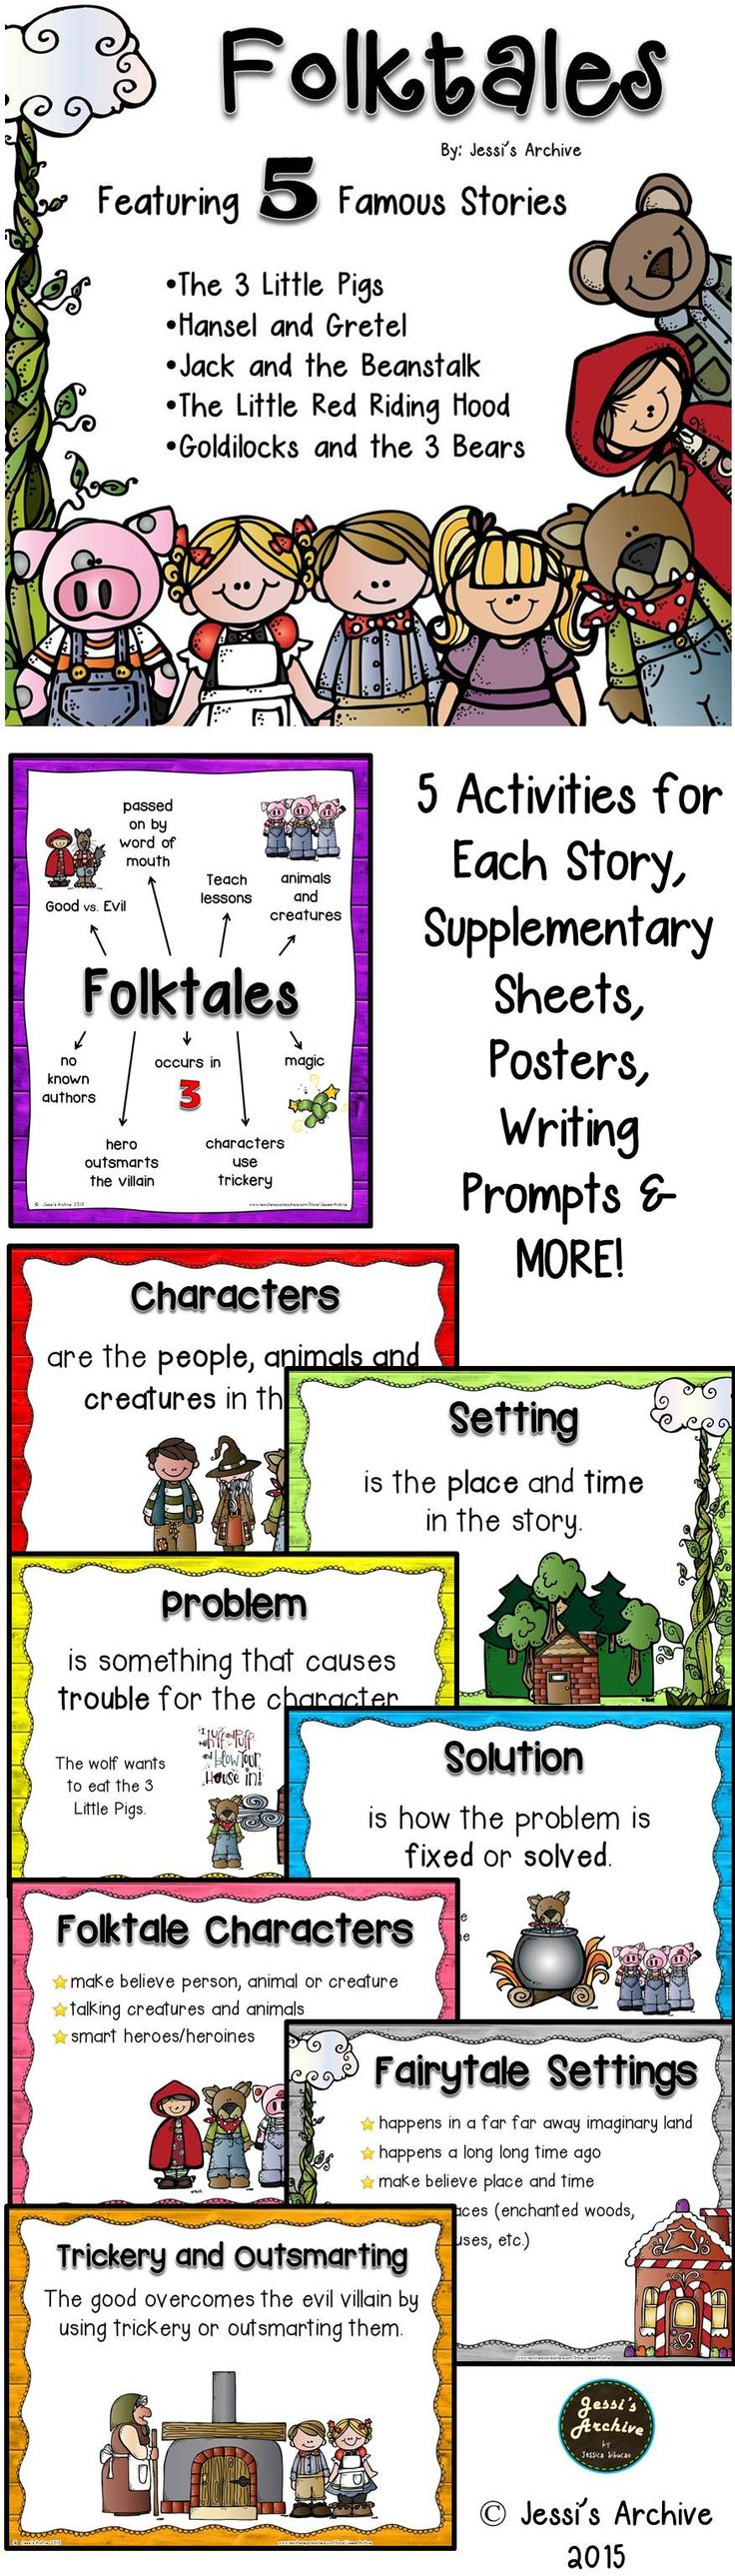 FOLKTALES: A Fantasy Unit: 90 pages - This pack will help your class have a magical folktales unit. Composed of supplementary posters, activity sheets, idea cards, booklets, graphic organizers and more!